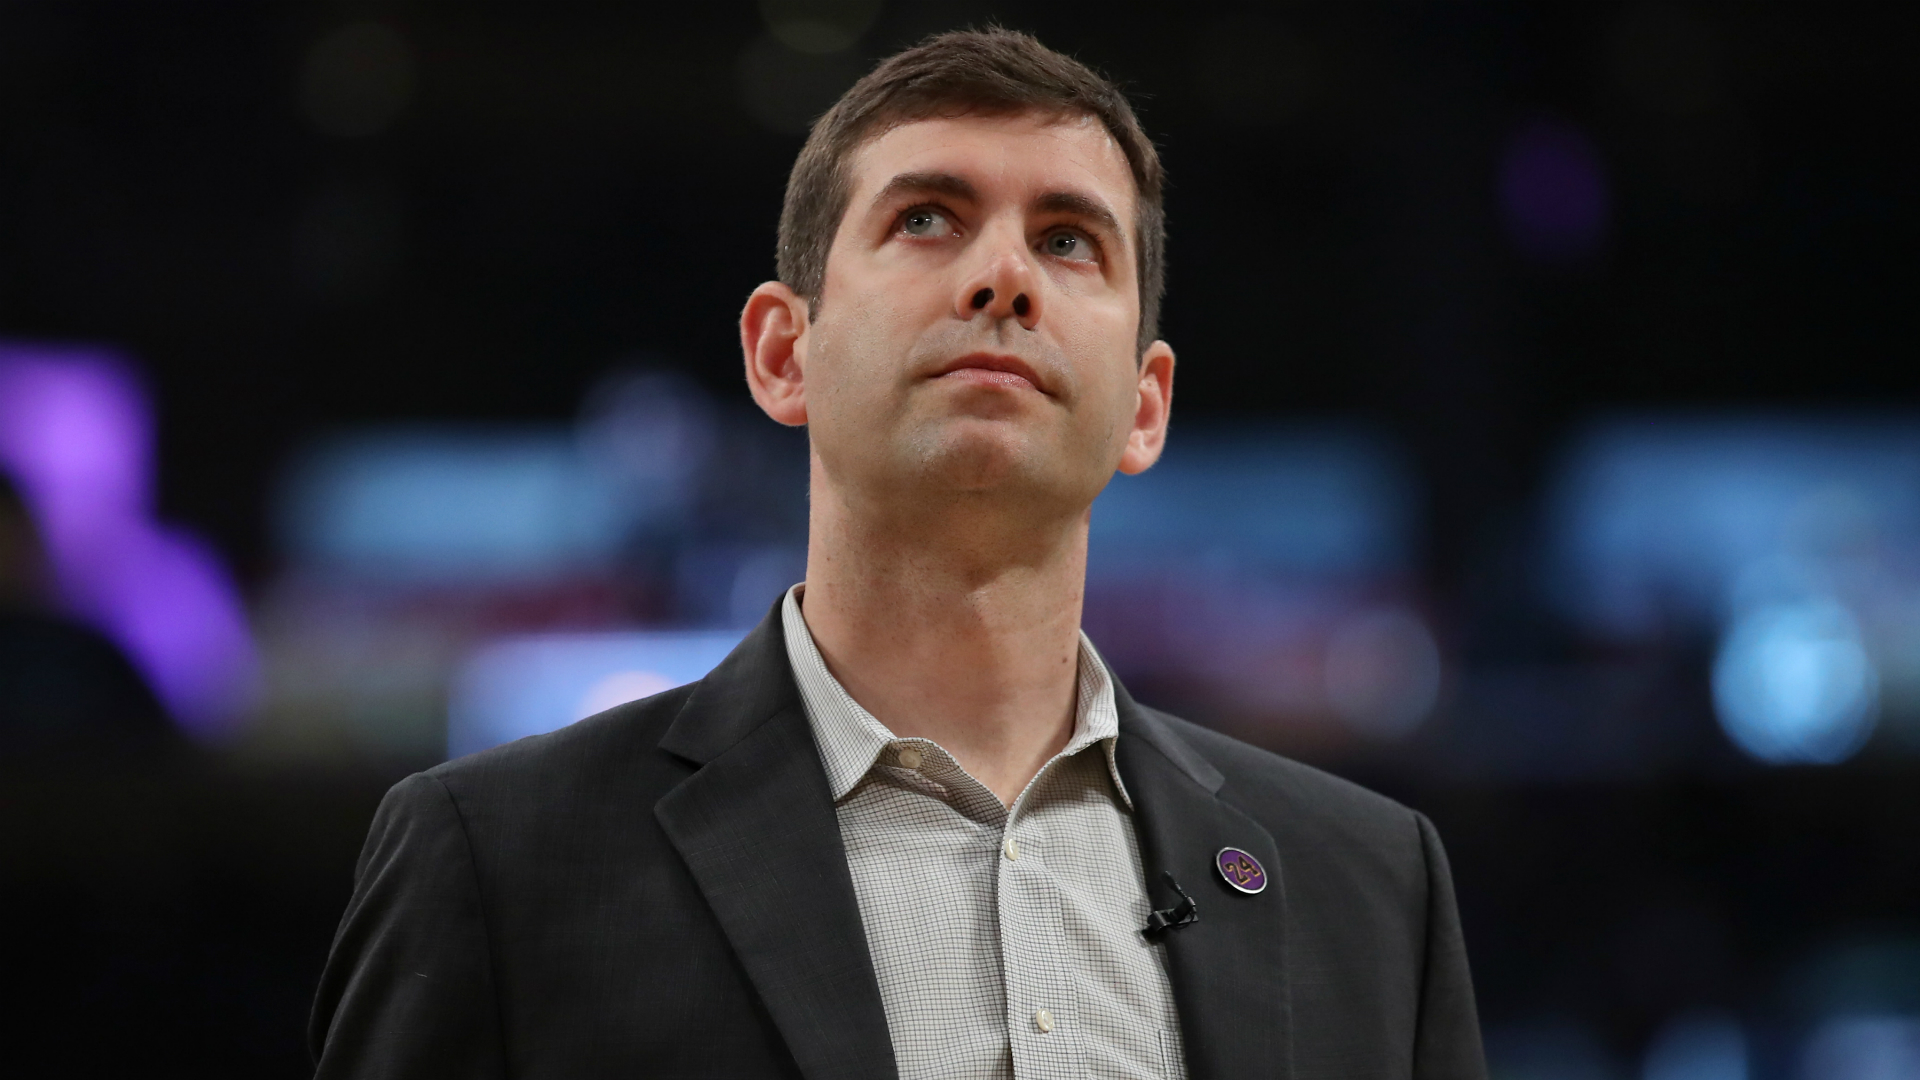 Celtics coach Stevens writes letter of support to players amid protests